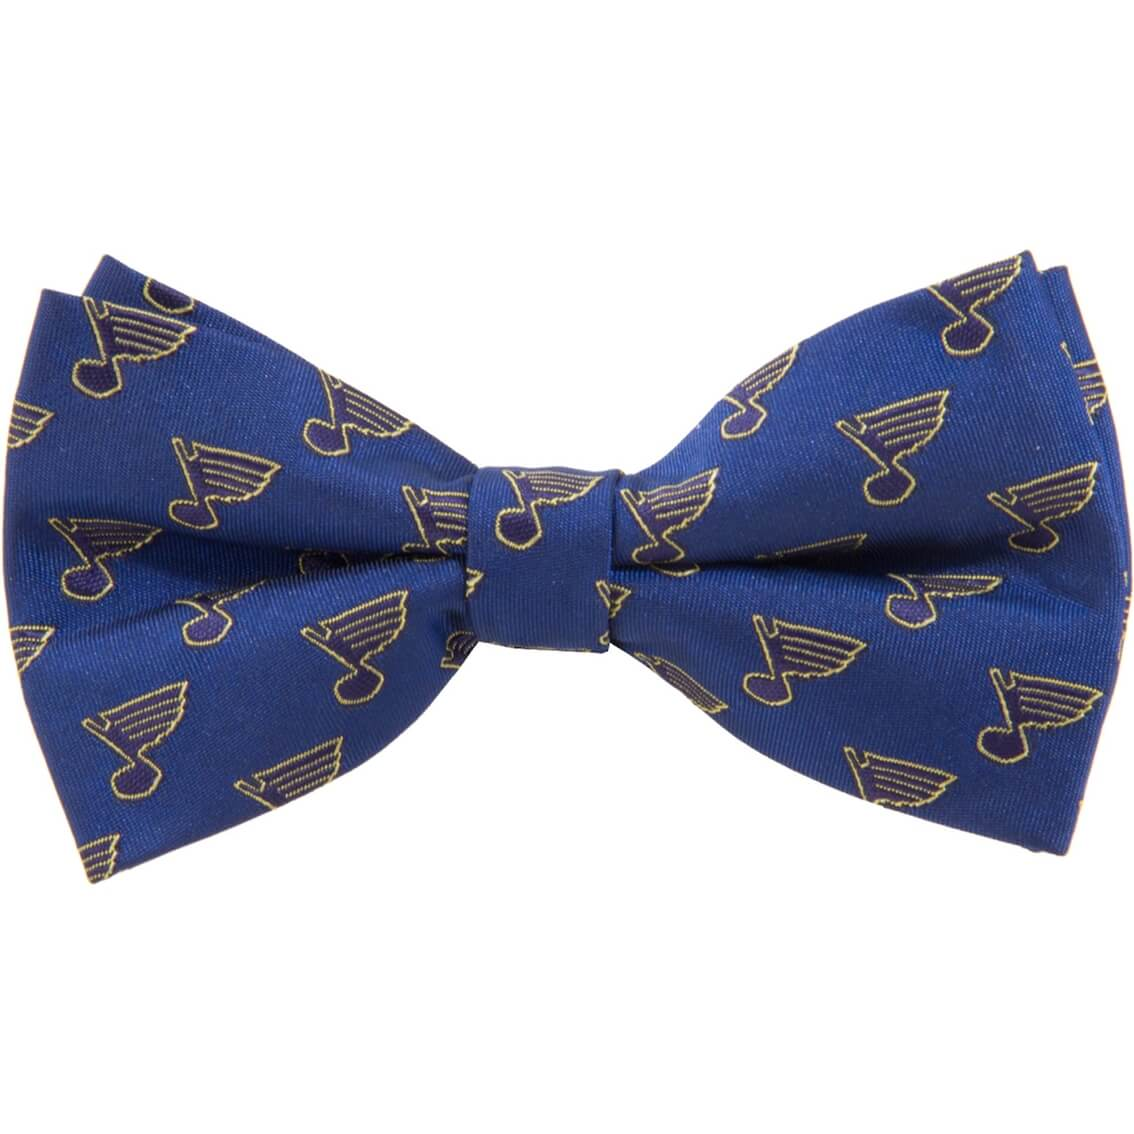 Blues logo bow tie